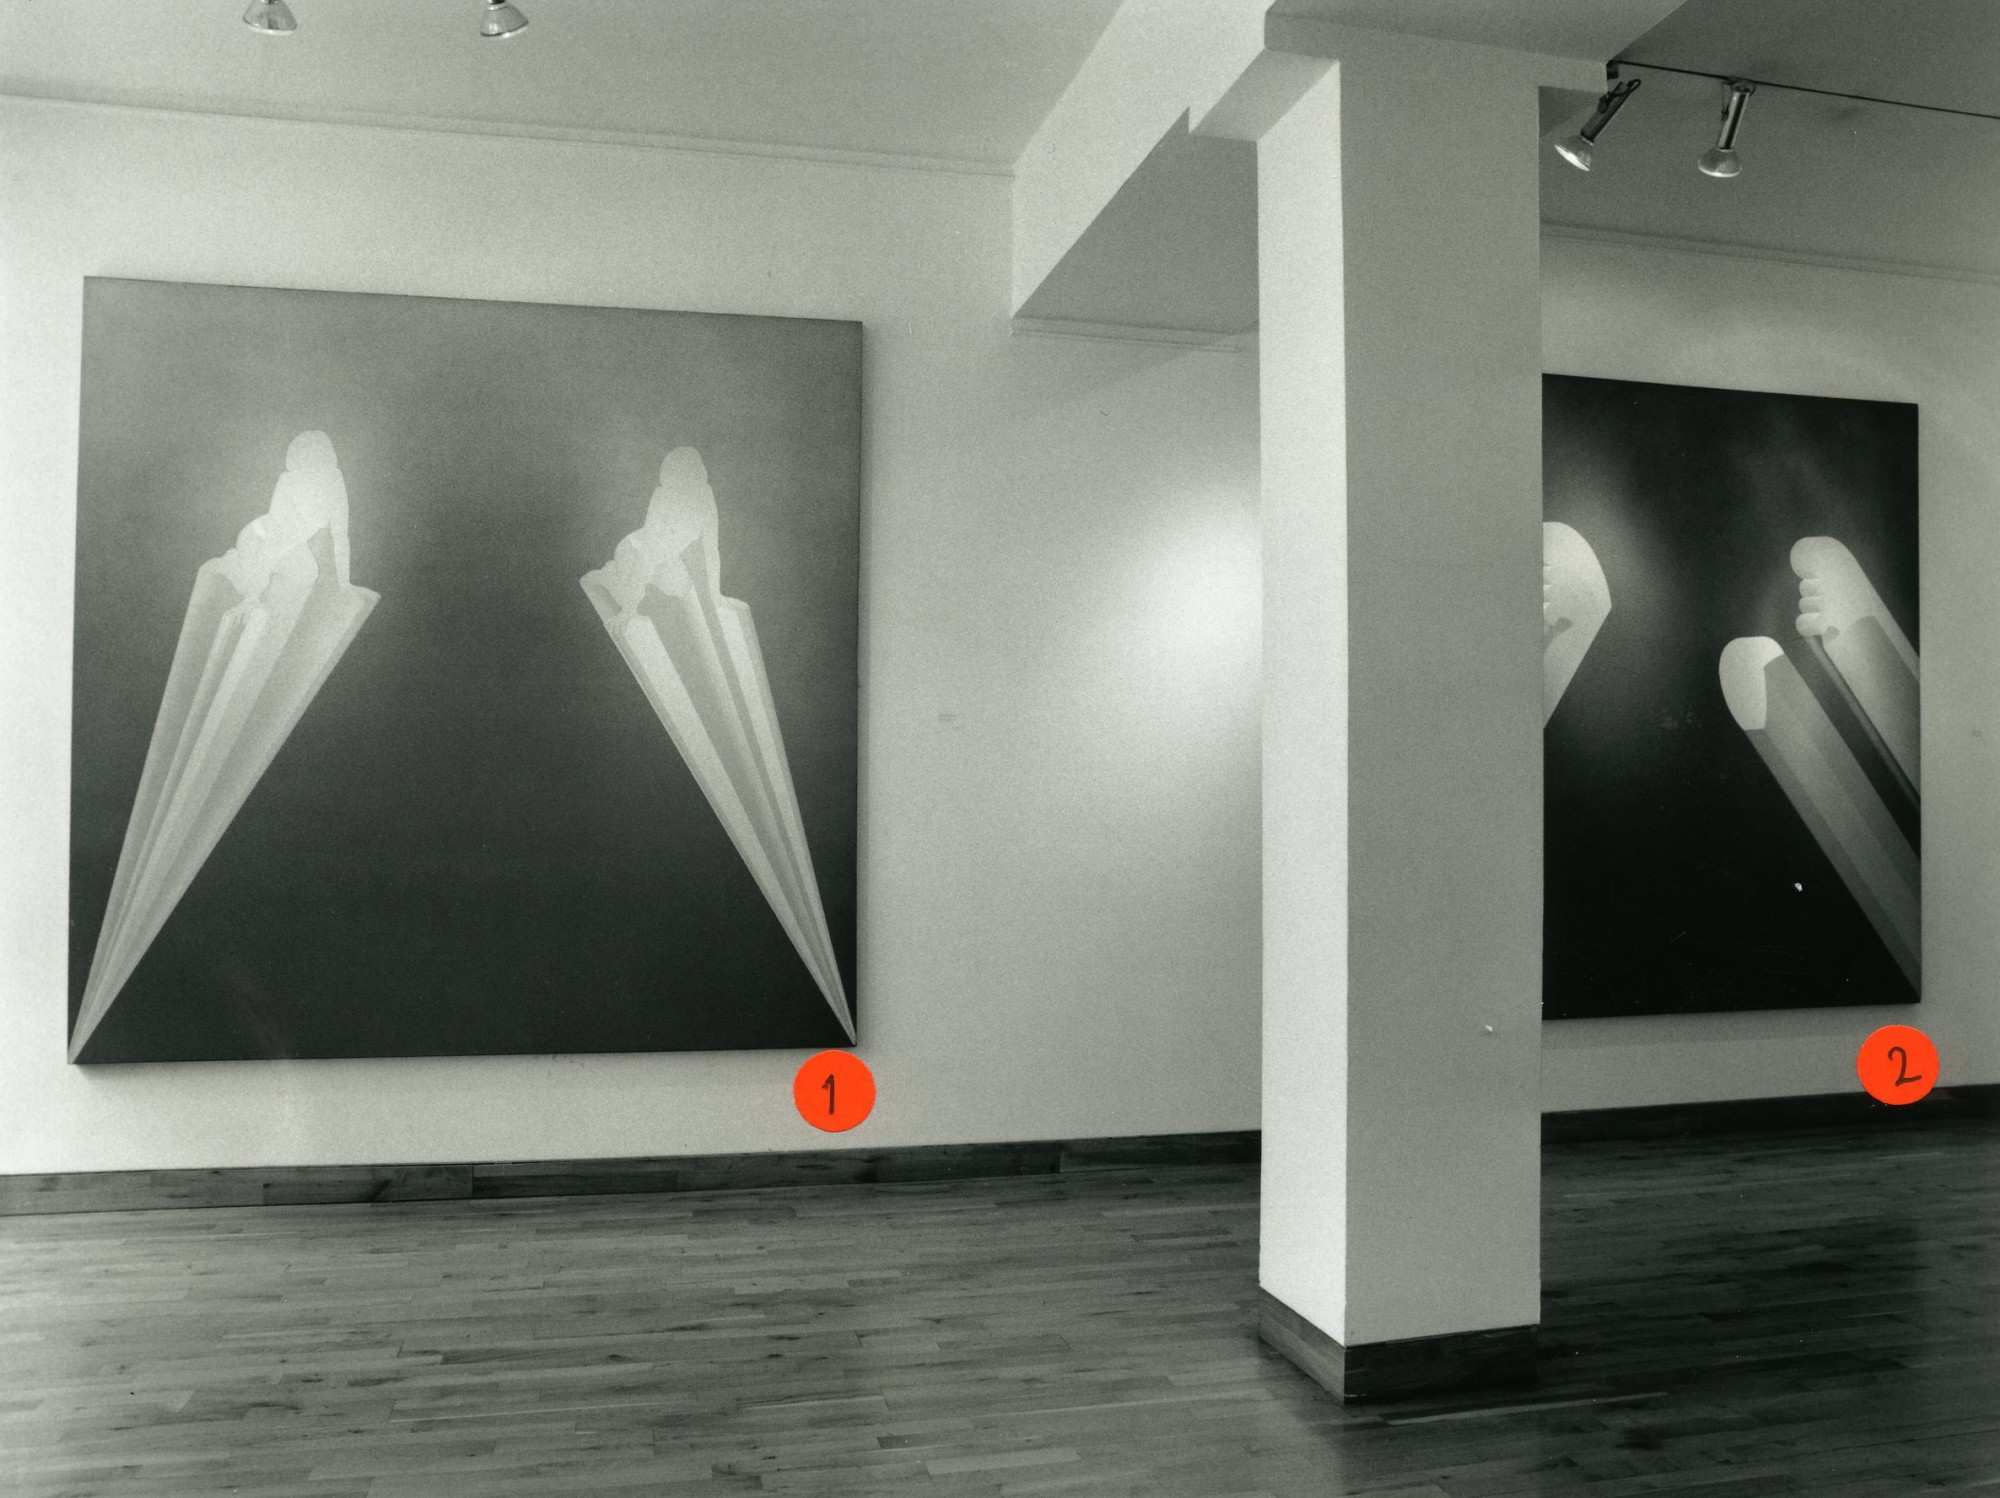 """<span class=""""link fancybox-details-link""""><a href=""""/exhibitions/156/works/image_standalone671/"""">View Detail Page</a></span><p>ANTONY DONALDSON 